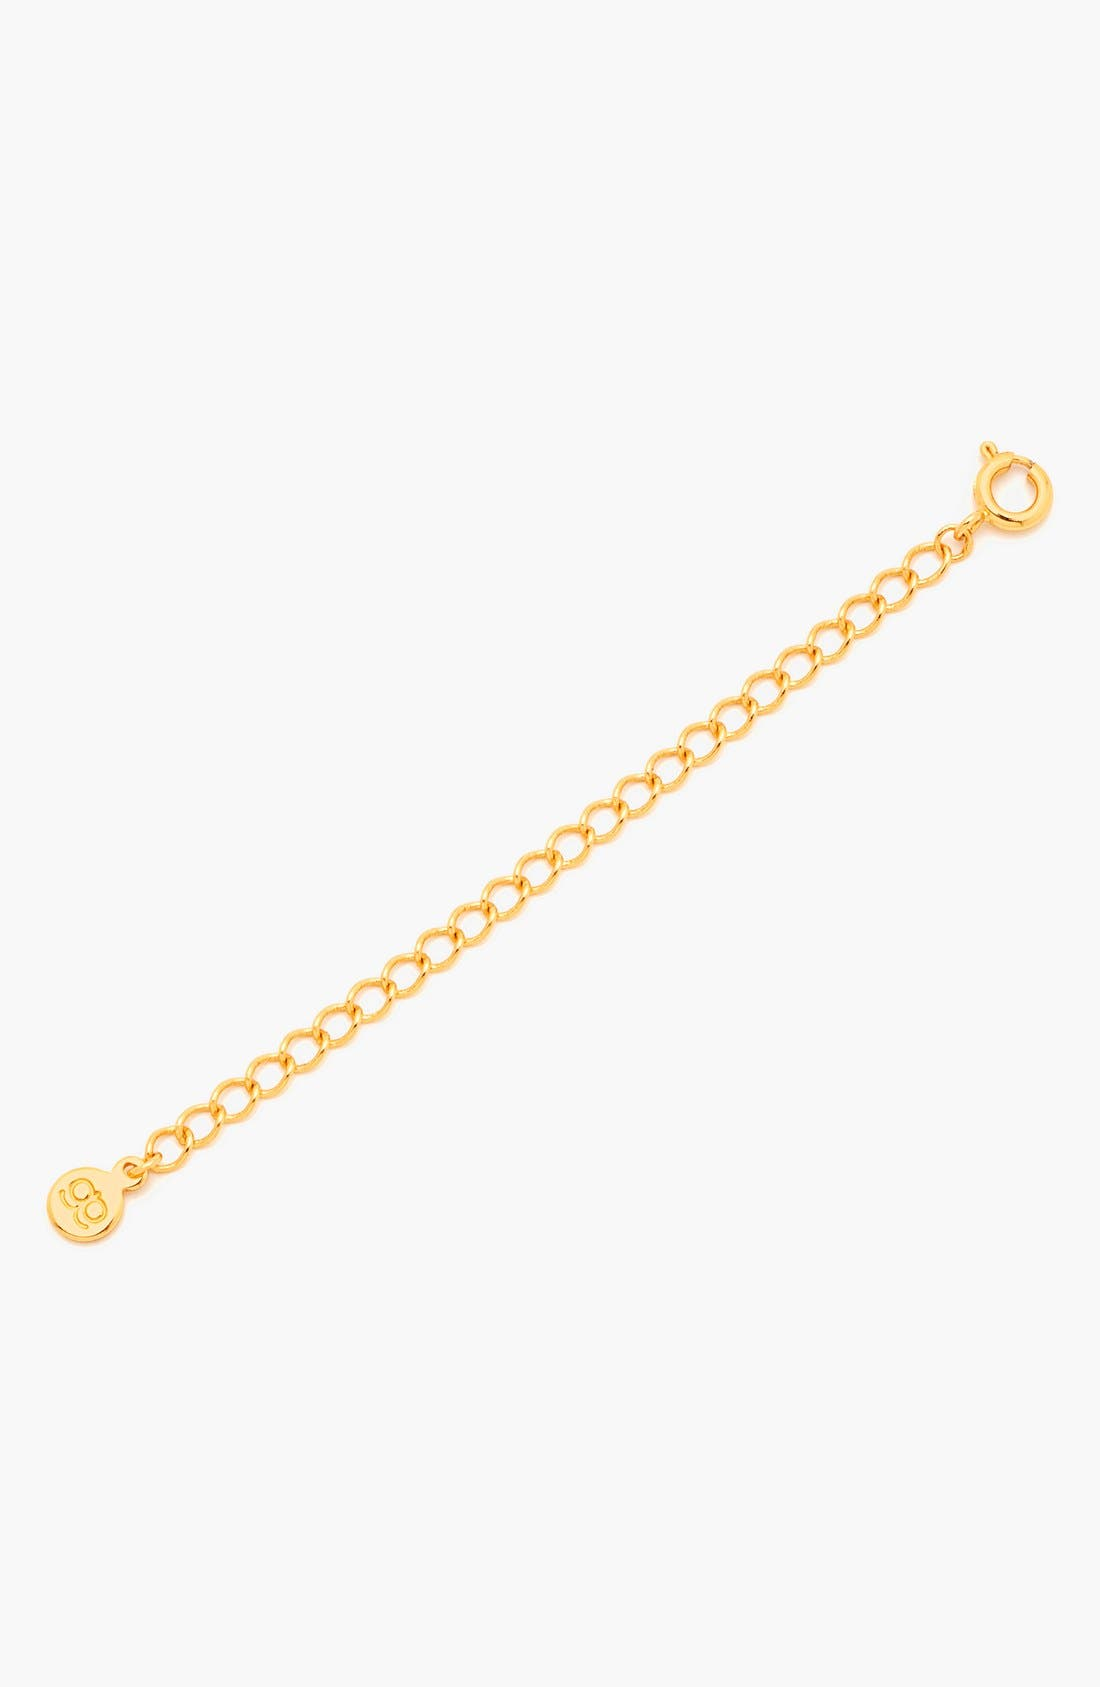 Necklace Extender,                             Main thumbnail 1, color,                             GOLD